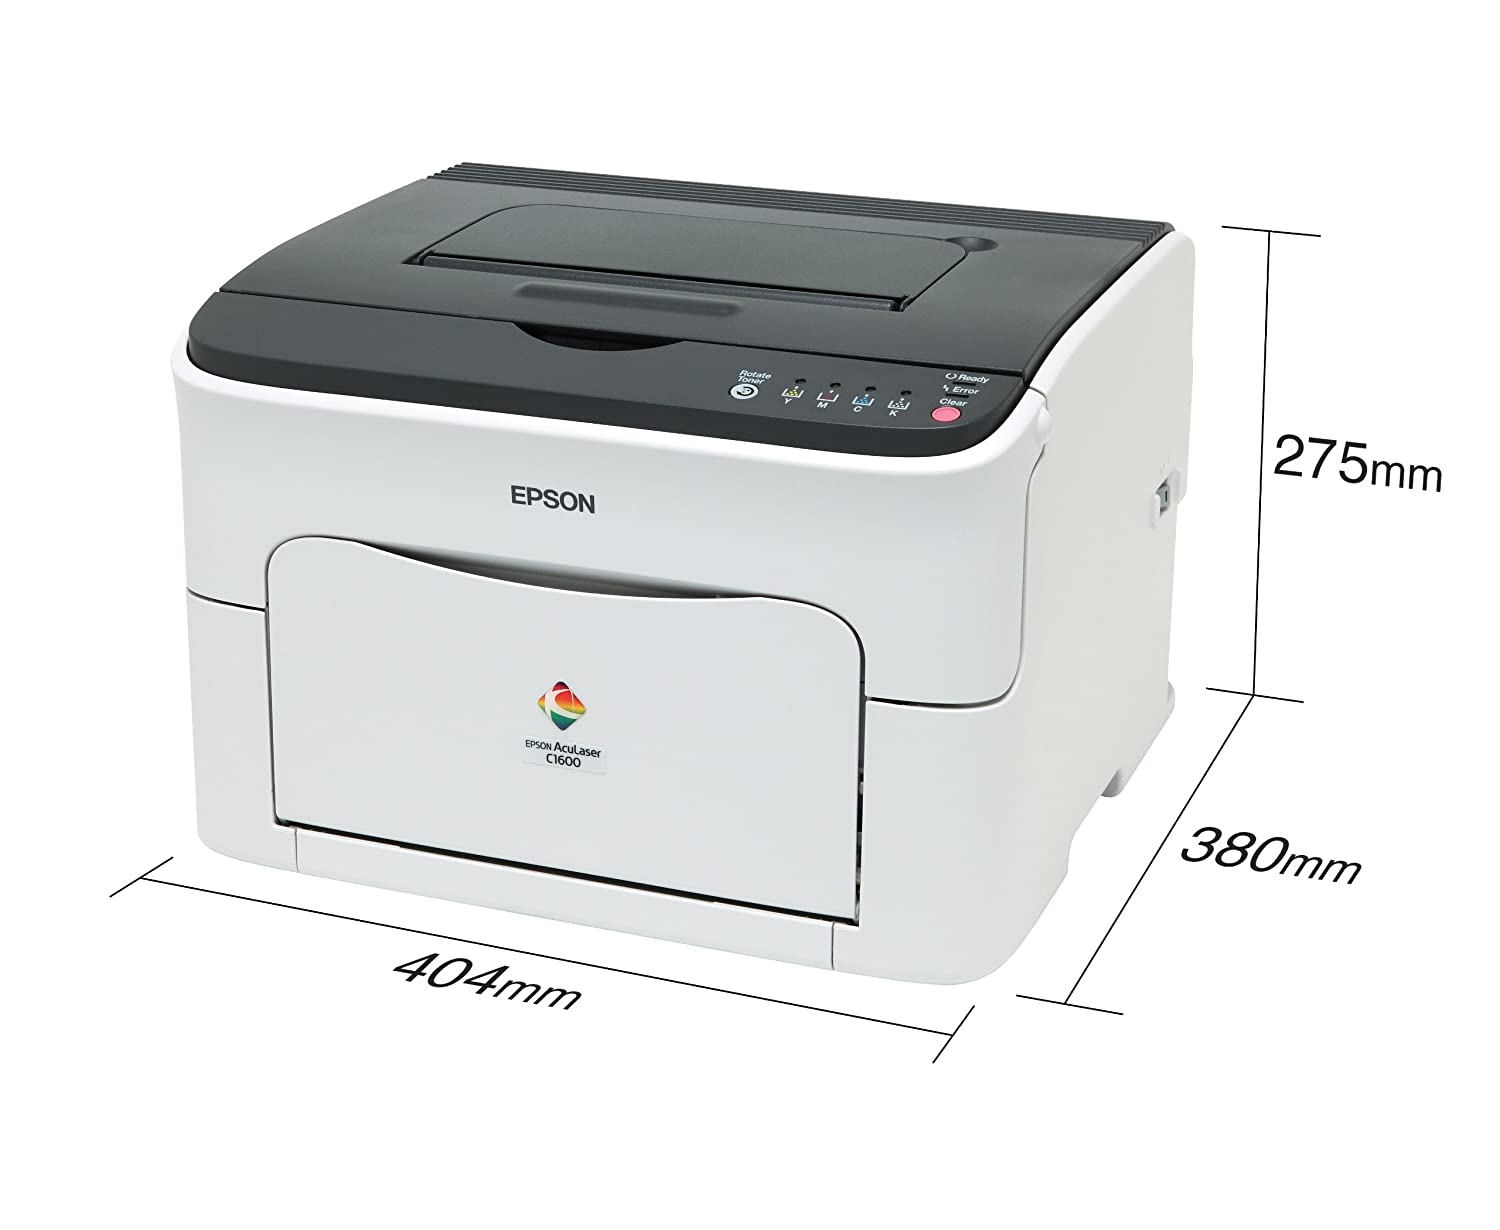 EPSON C1600 DRIVERS WINDOWS 7 (2019)